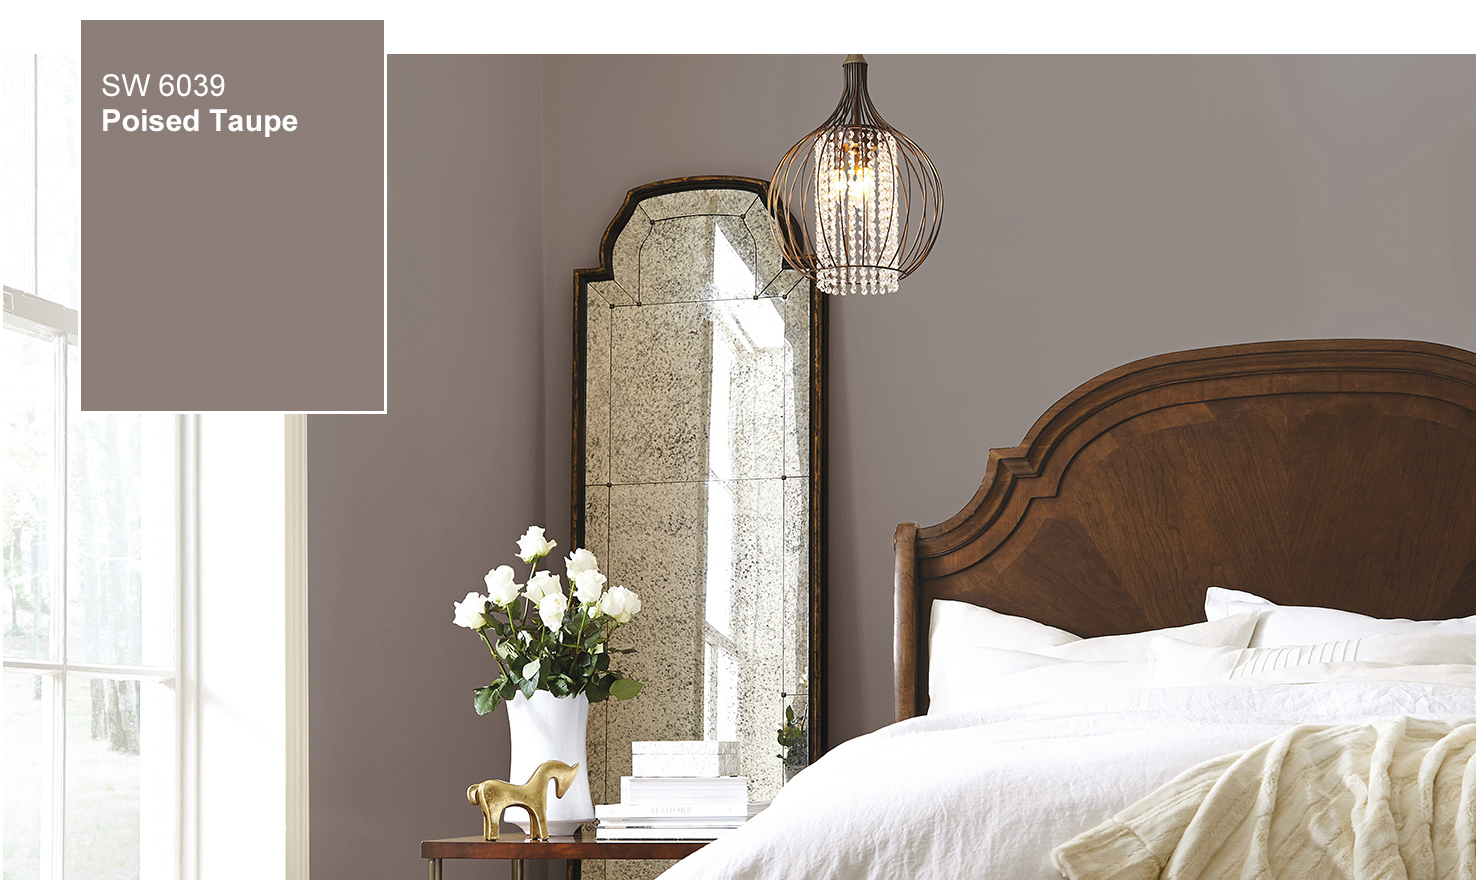 Introducing the 2017 color of the year poised taupe sw 6039 for Bedroom paint colors 2017